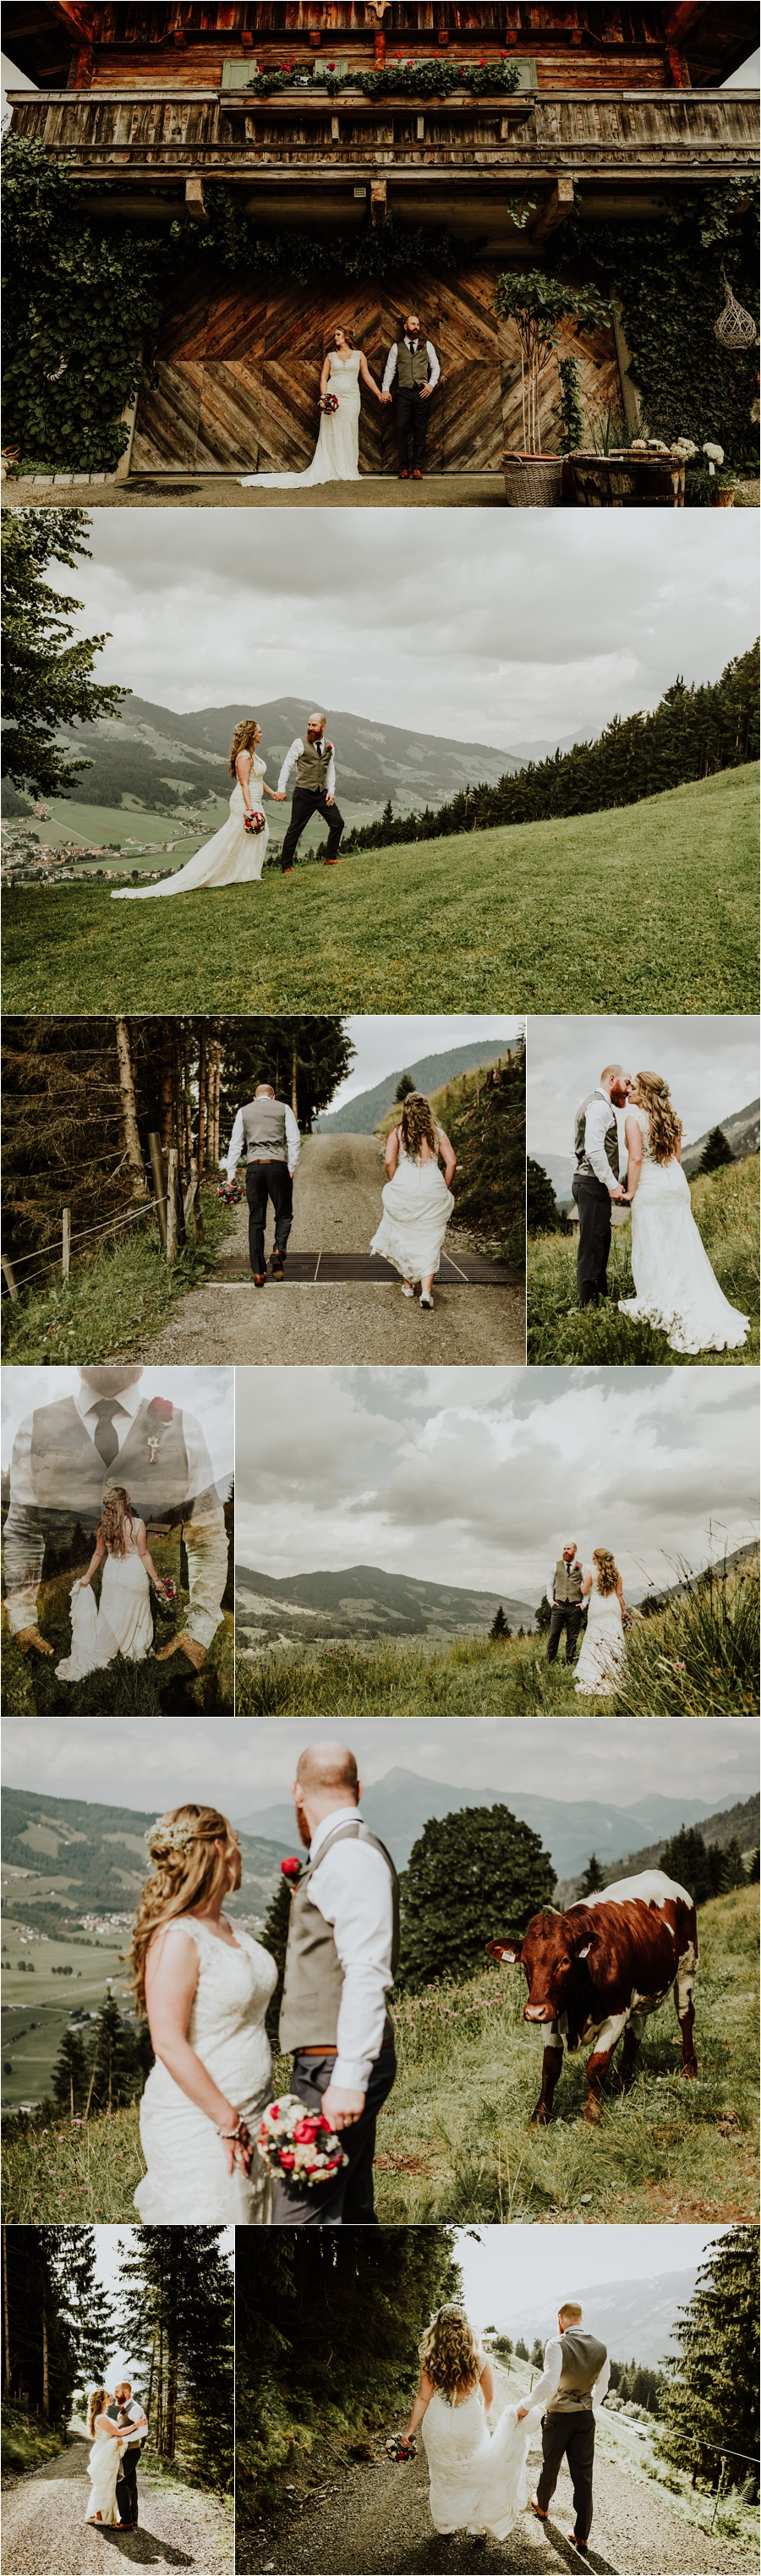 A destination wedding at the Kandleralm, Mellanie and Jesse have bride and groom portraits in the mountains by Wild Connections Photography